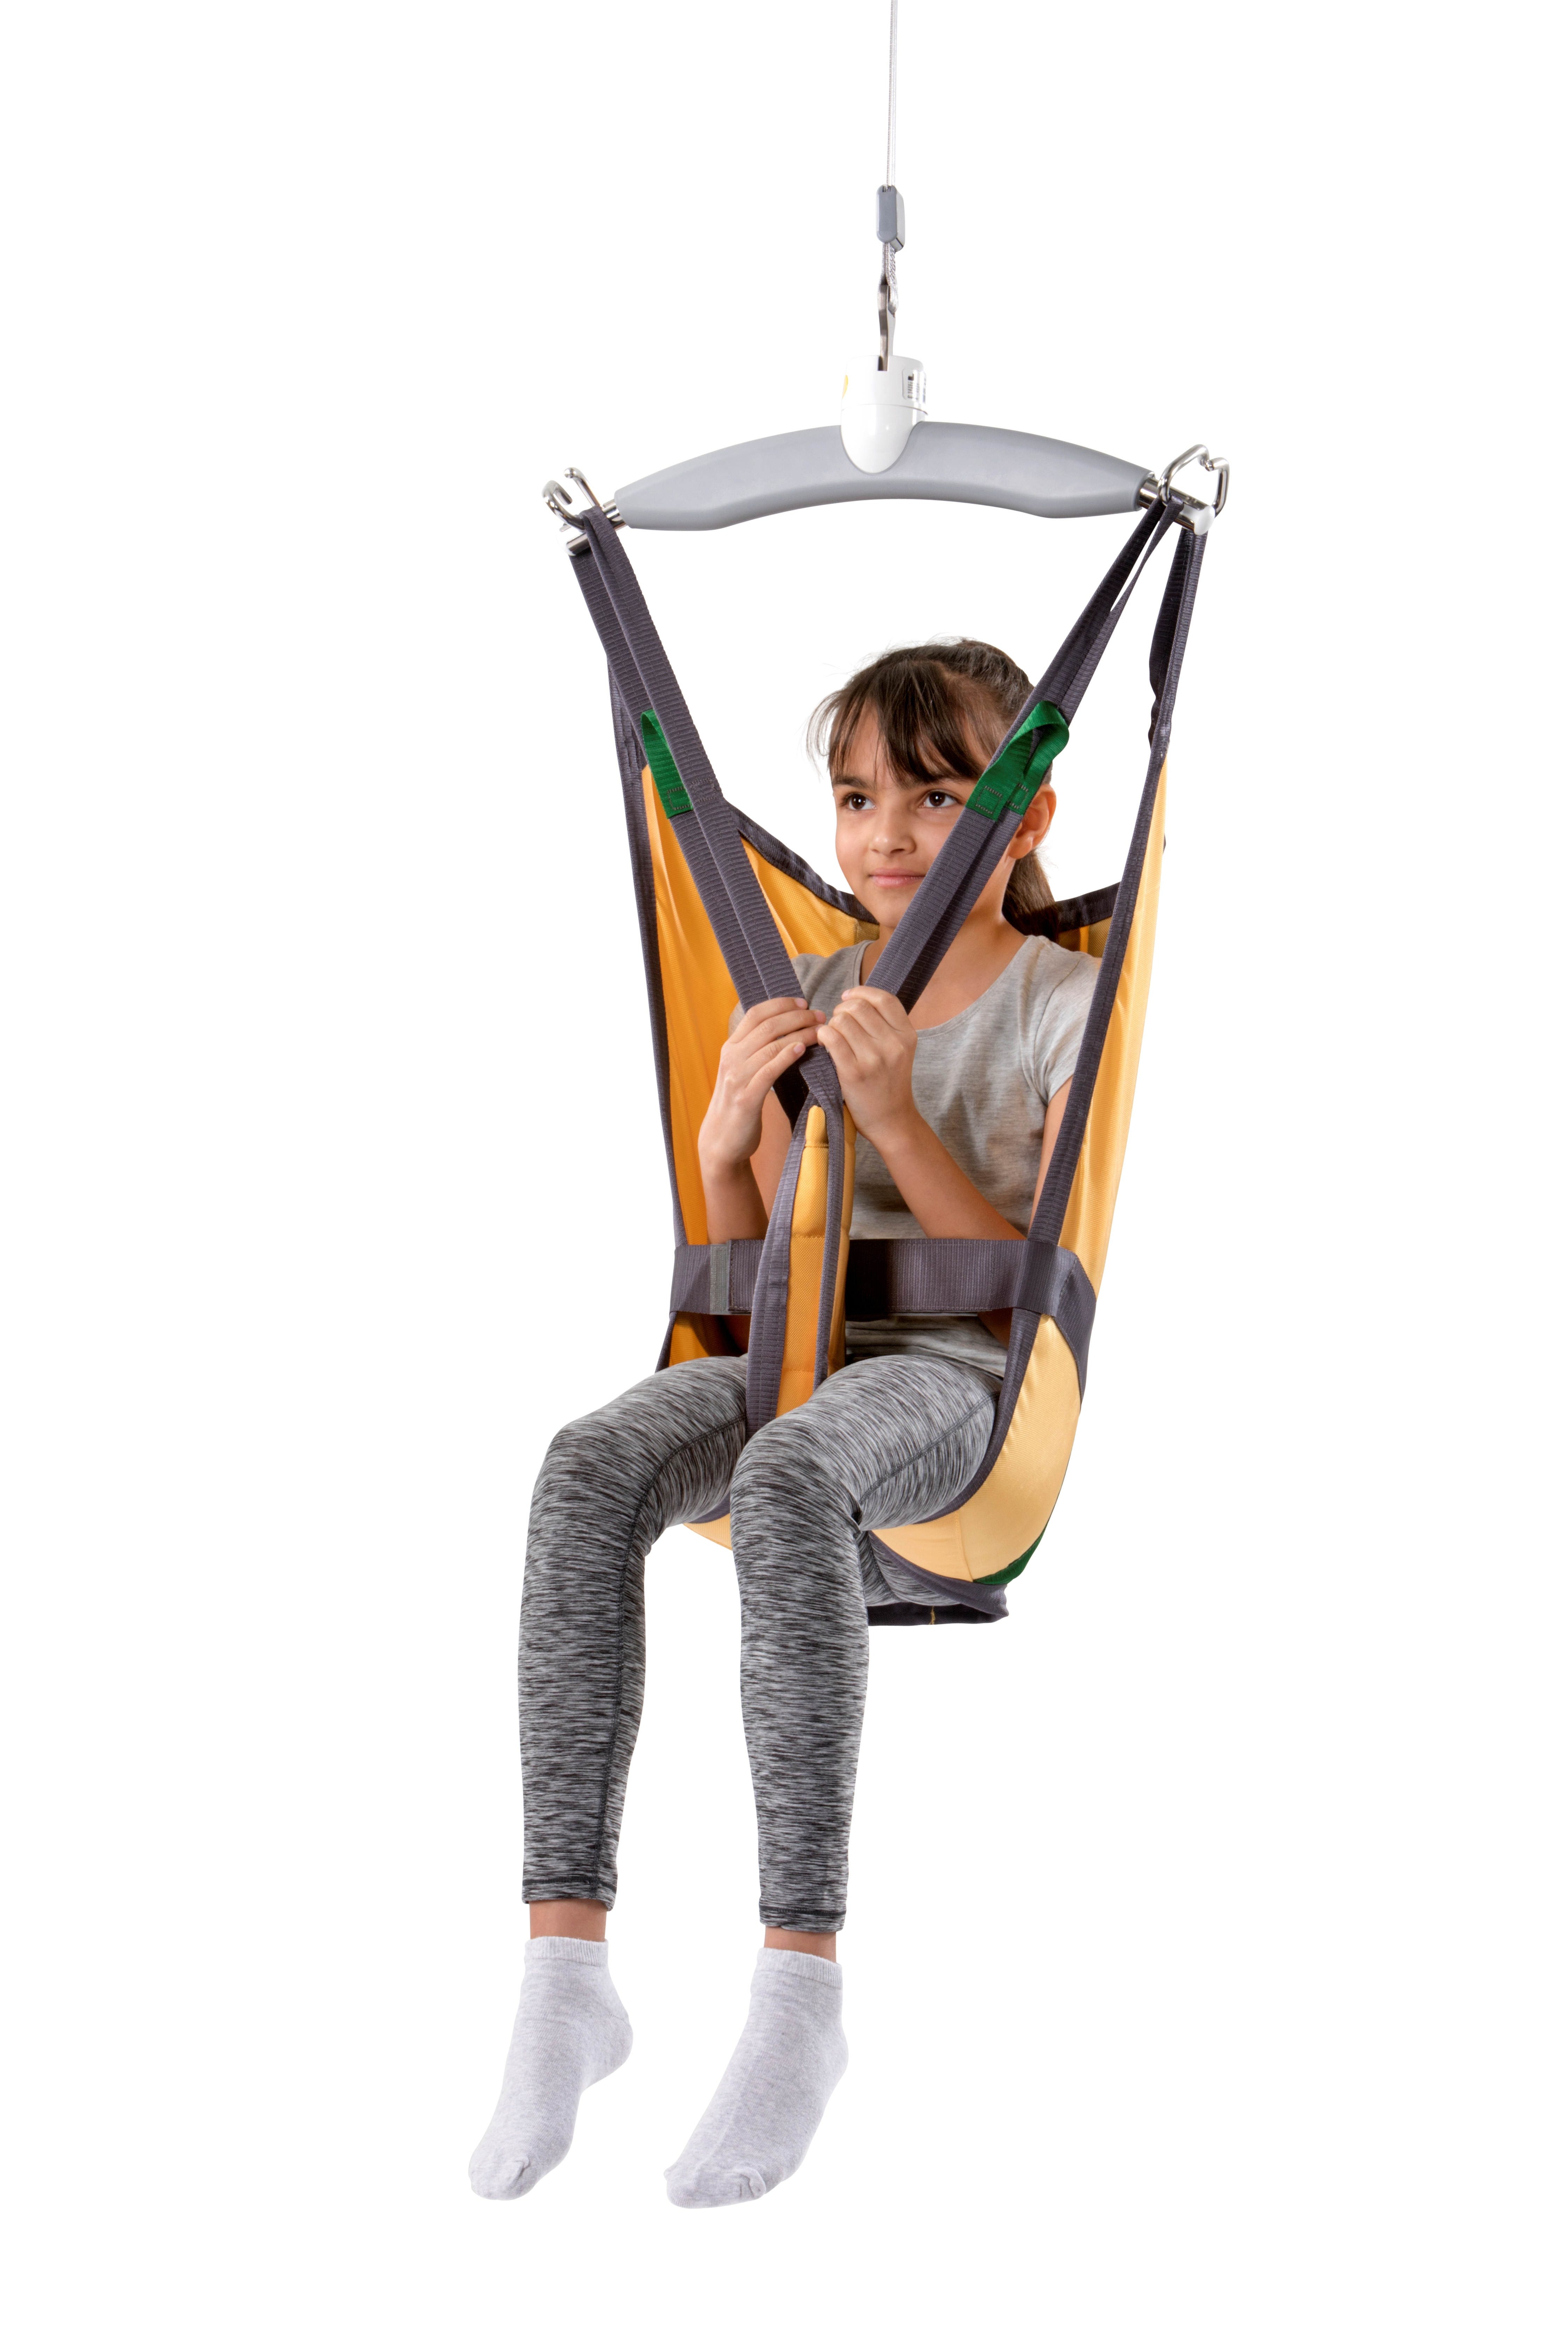 Paediatric Sling For Lifting And Moving Children